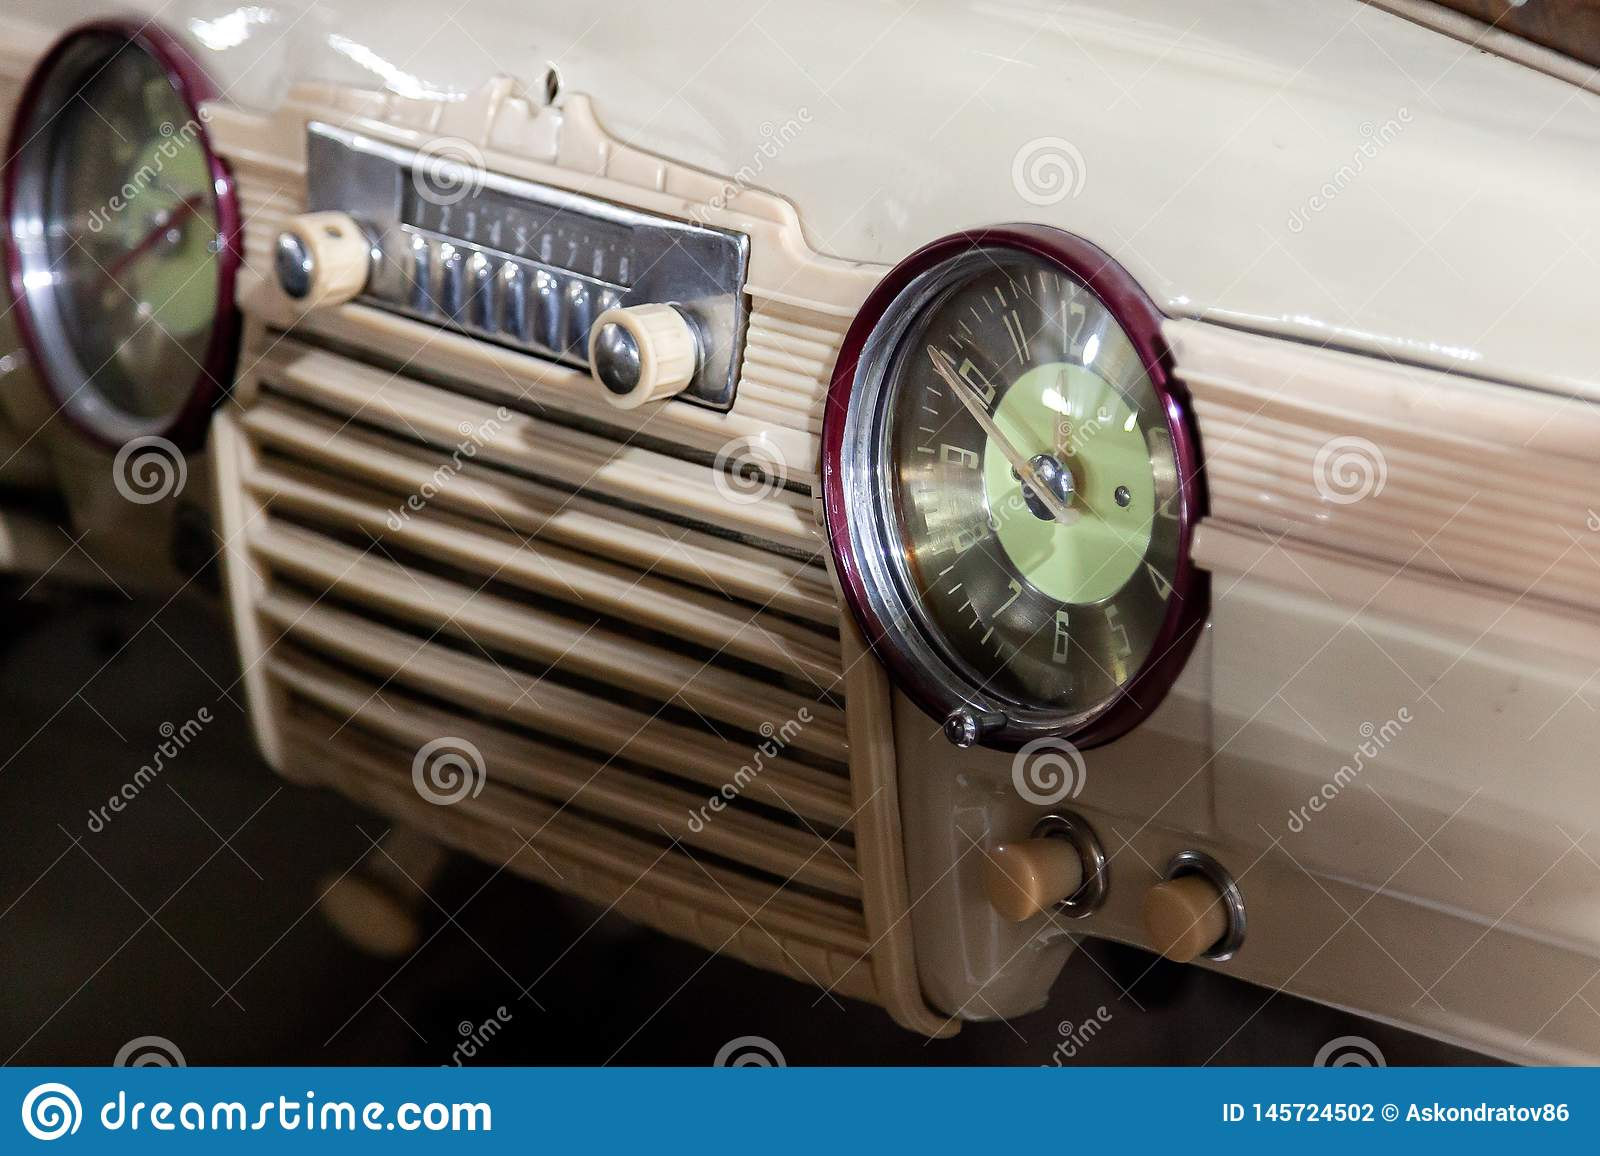 Vintage car radio restoration